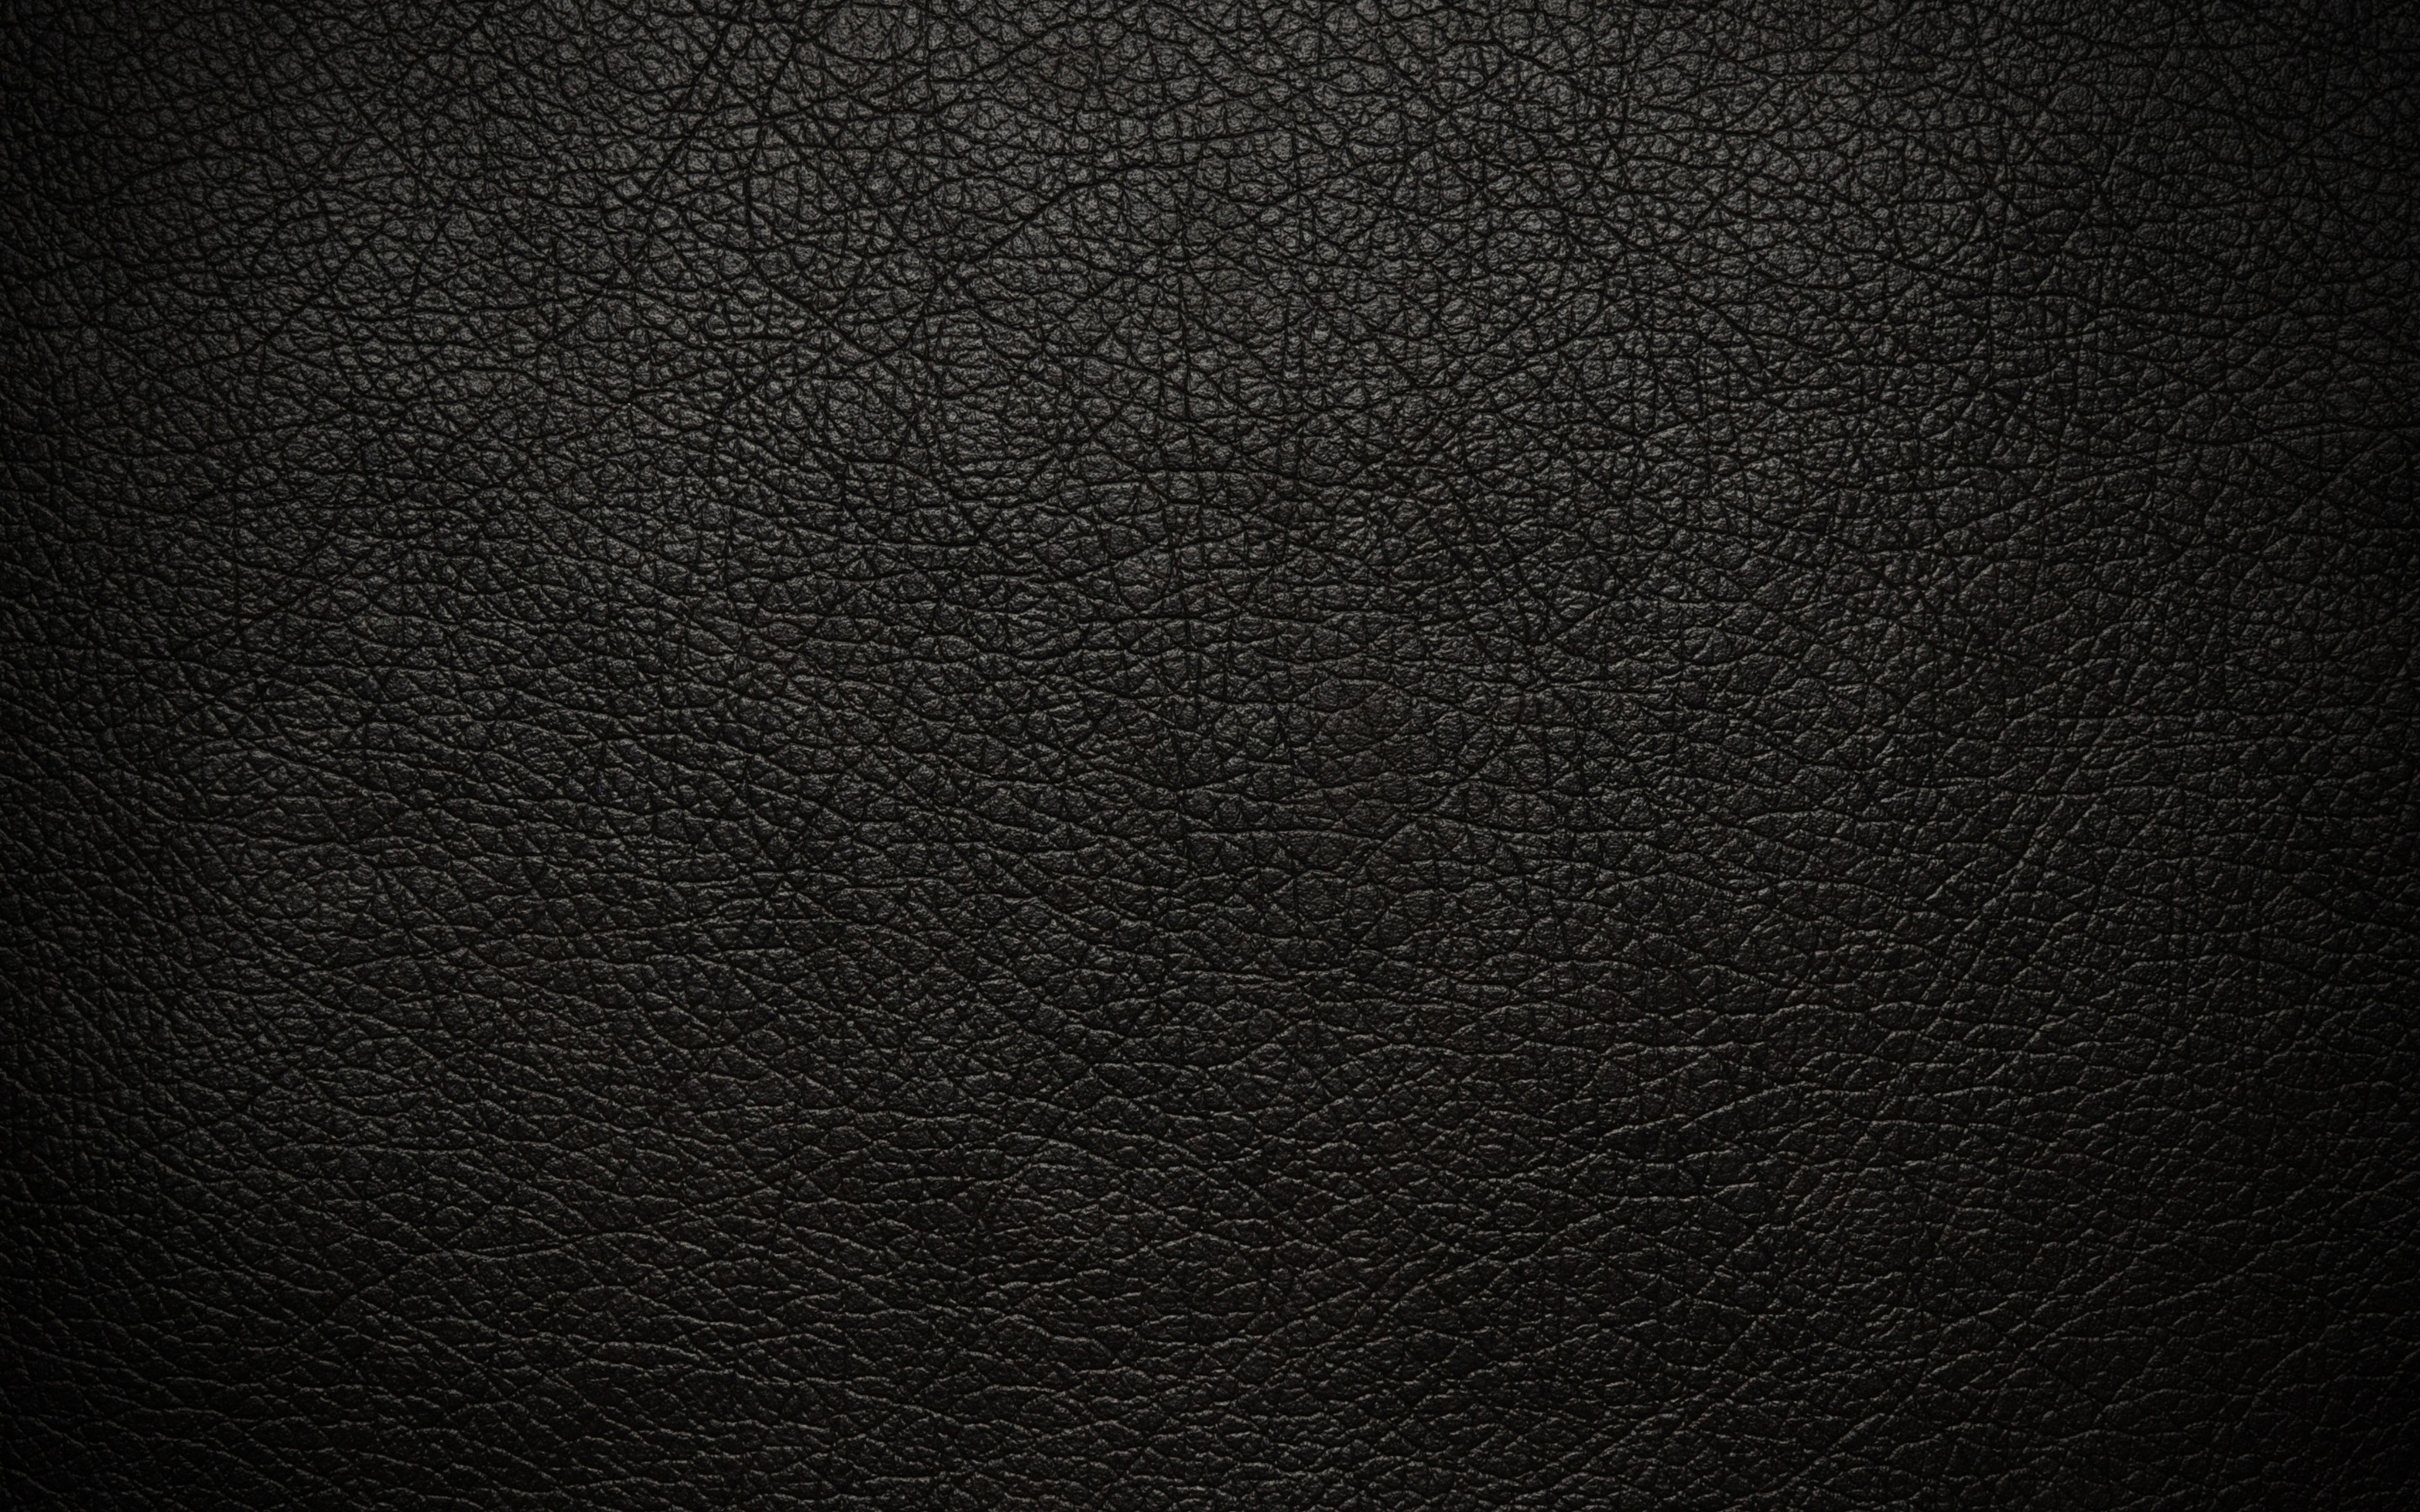 Black Leather Wallpaper 23316